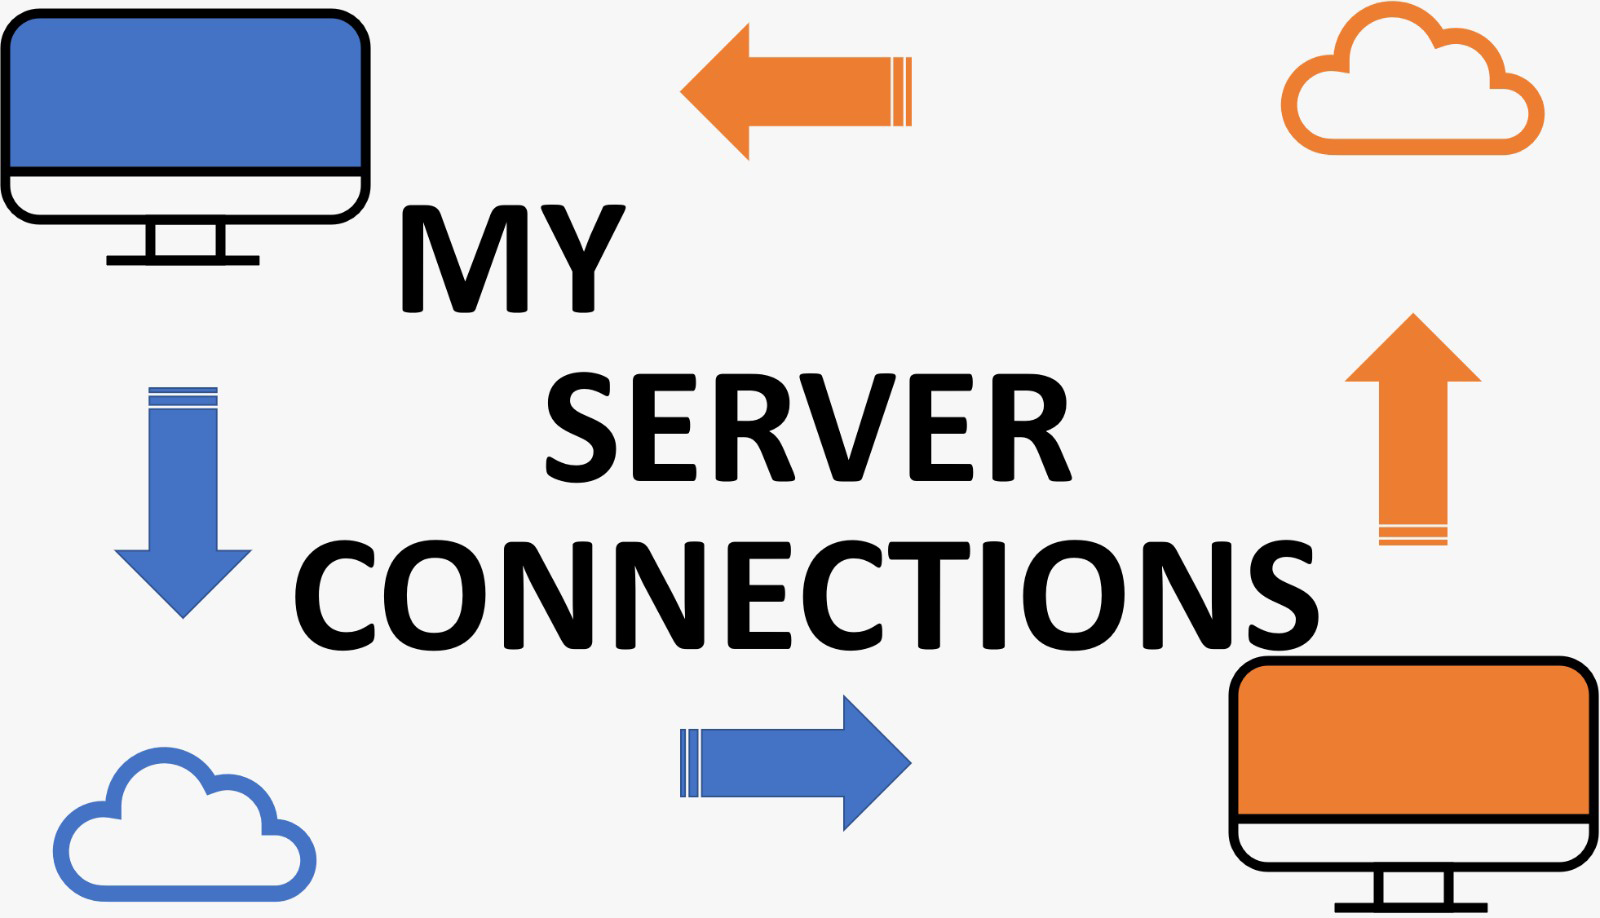 My Server Connections